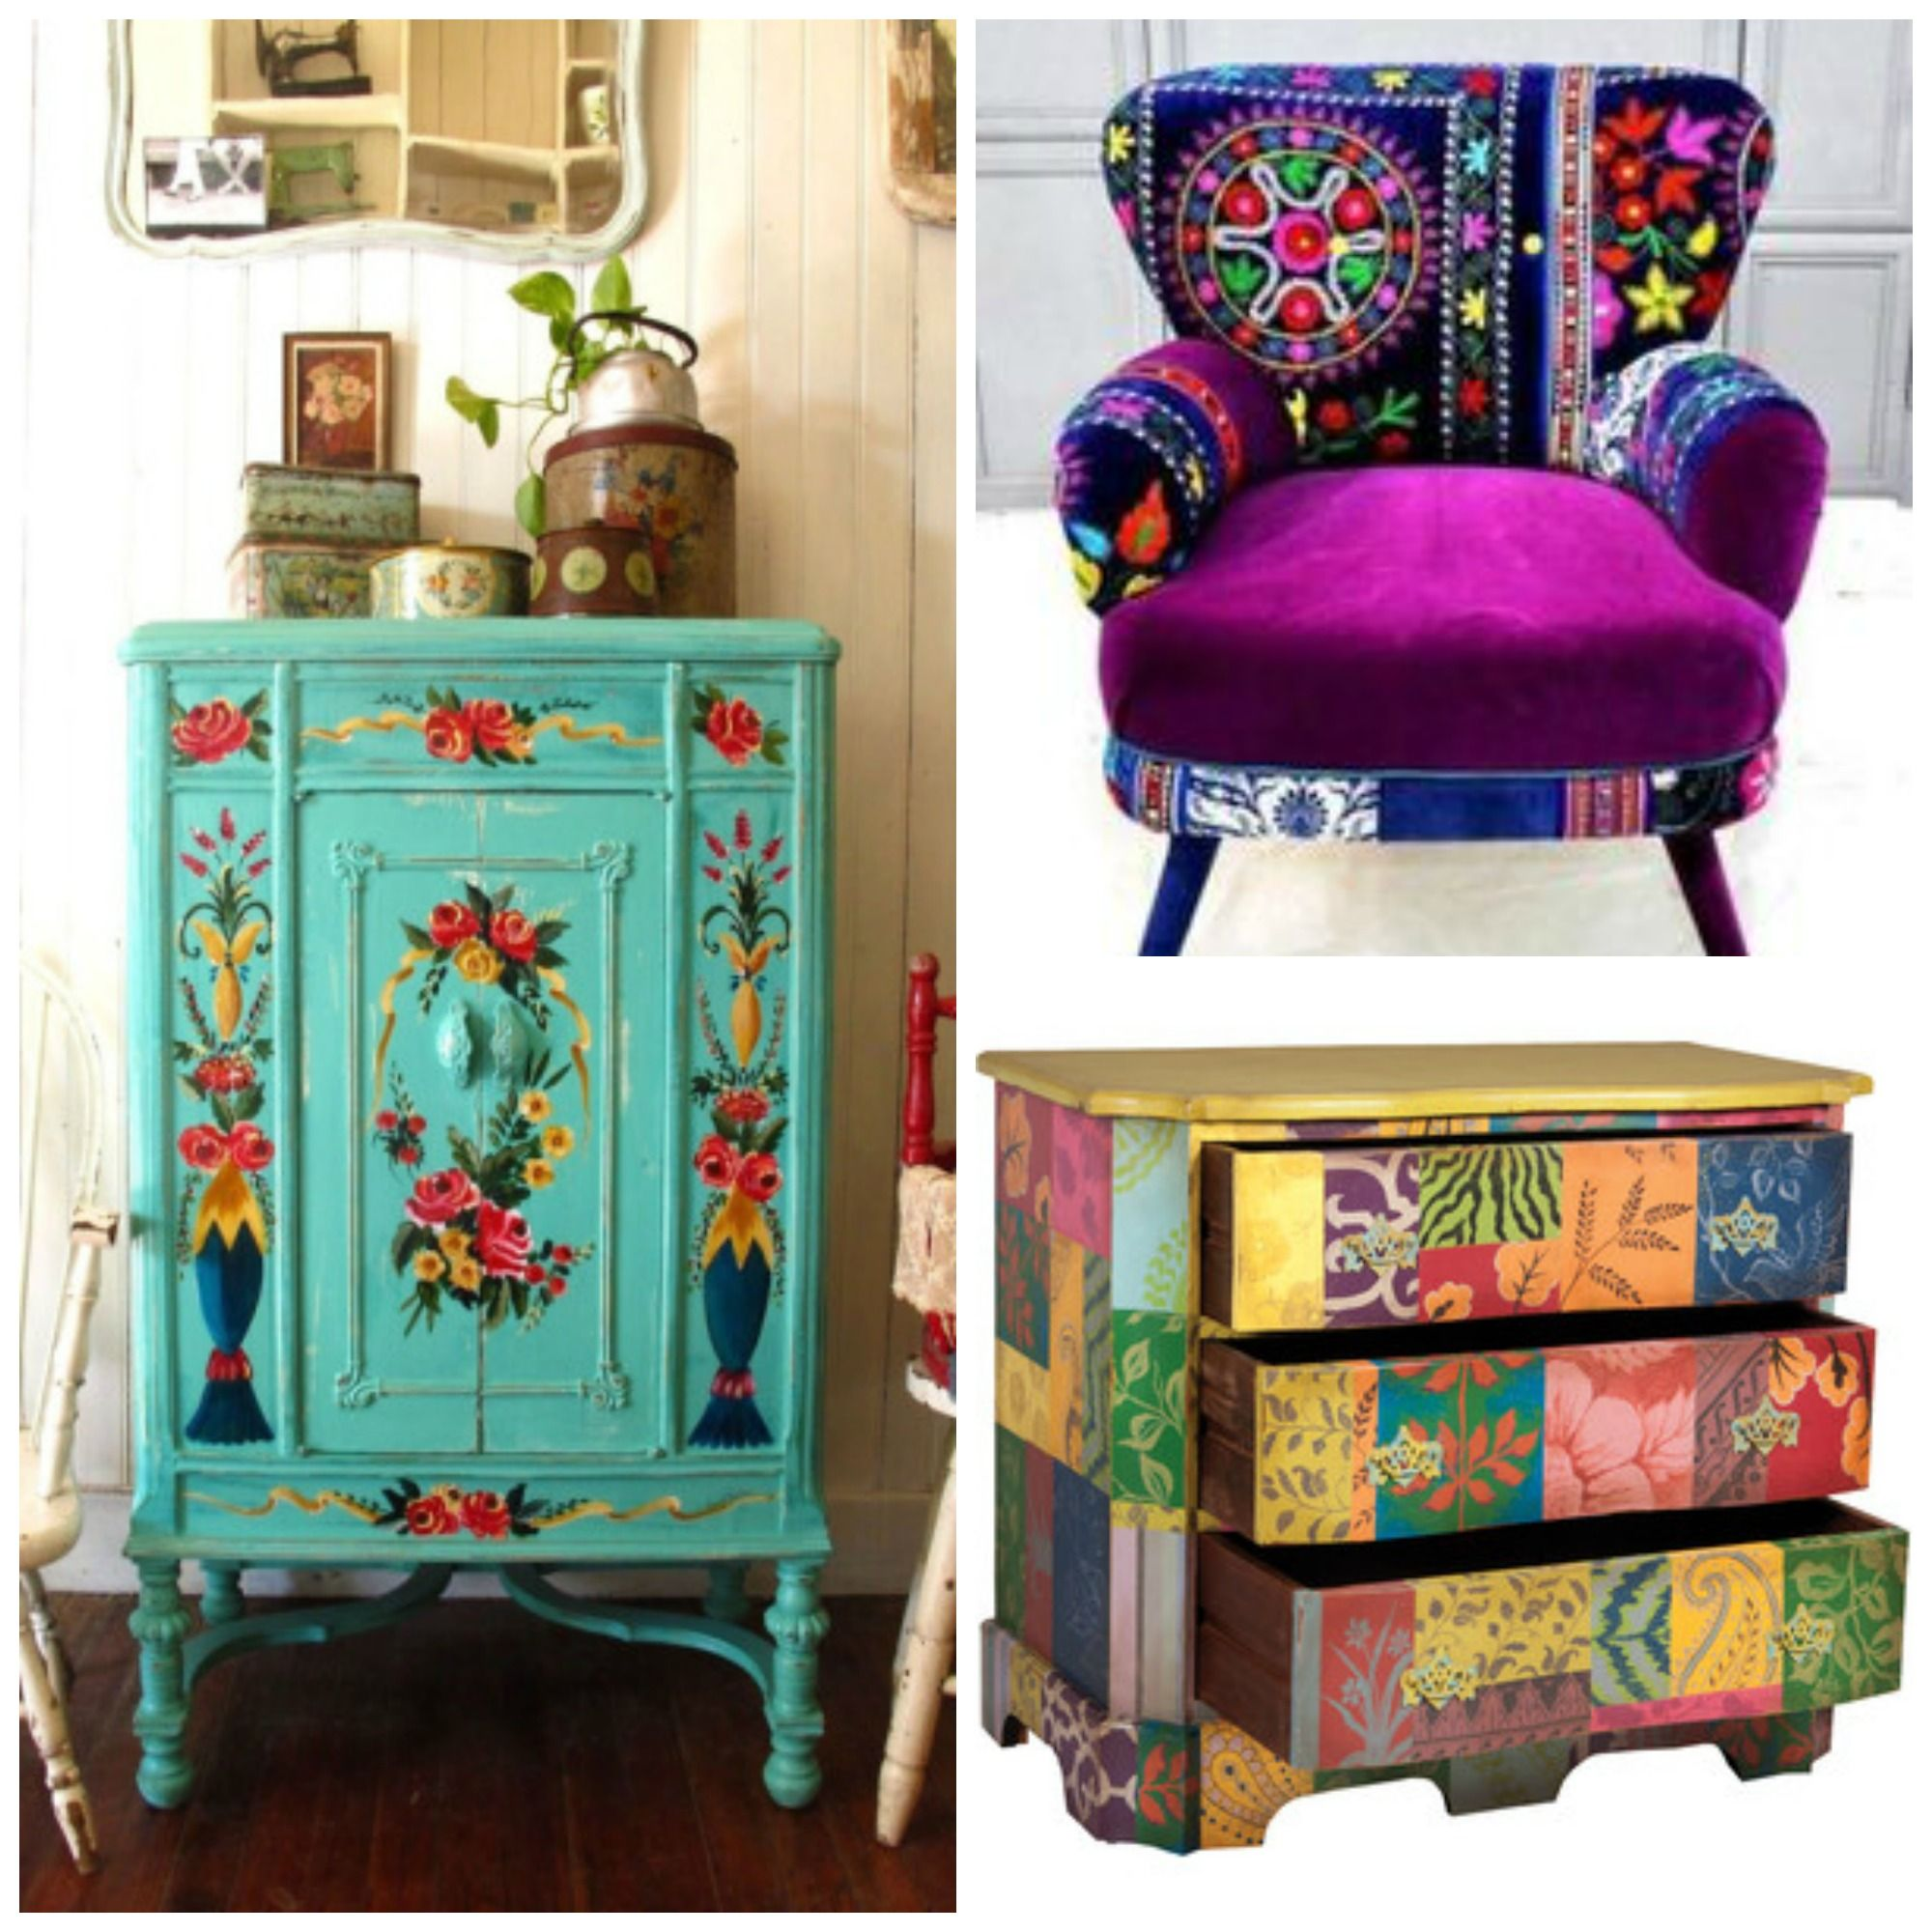 Beau Hippie Home Decor: Bohemian Interior, Bohemian Decor Style .